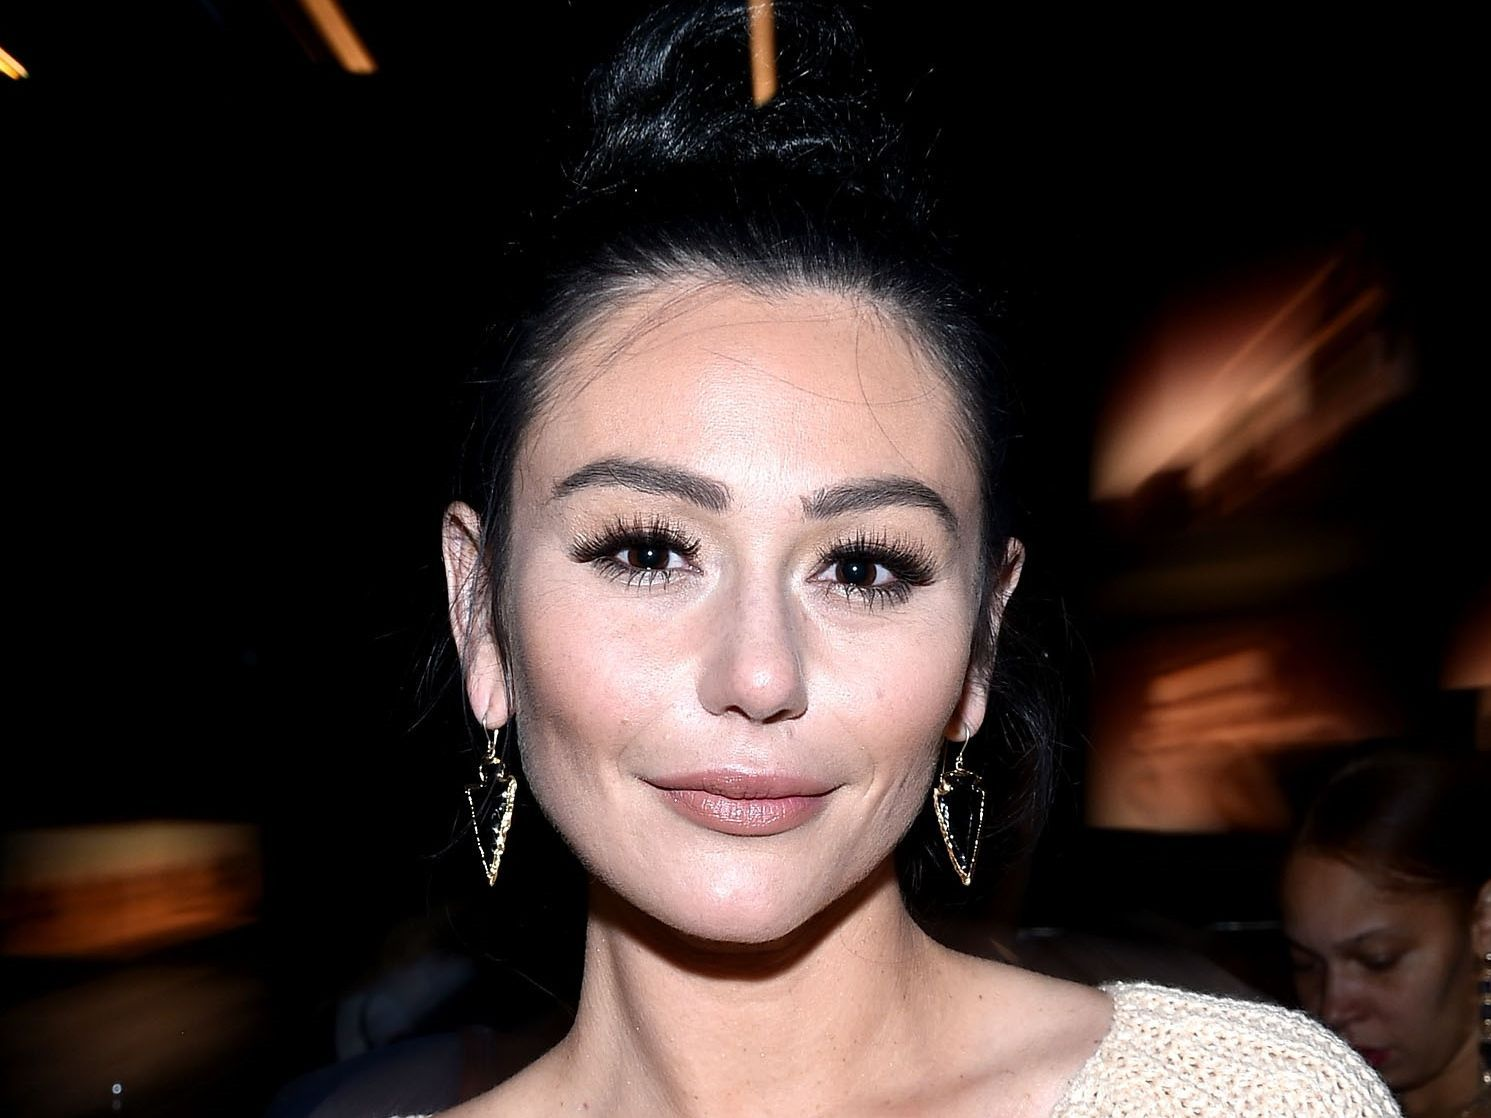 Jwoww Just Chopped Off Her Hair And Its As Drastic As It Sounds Mtv